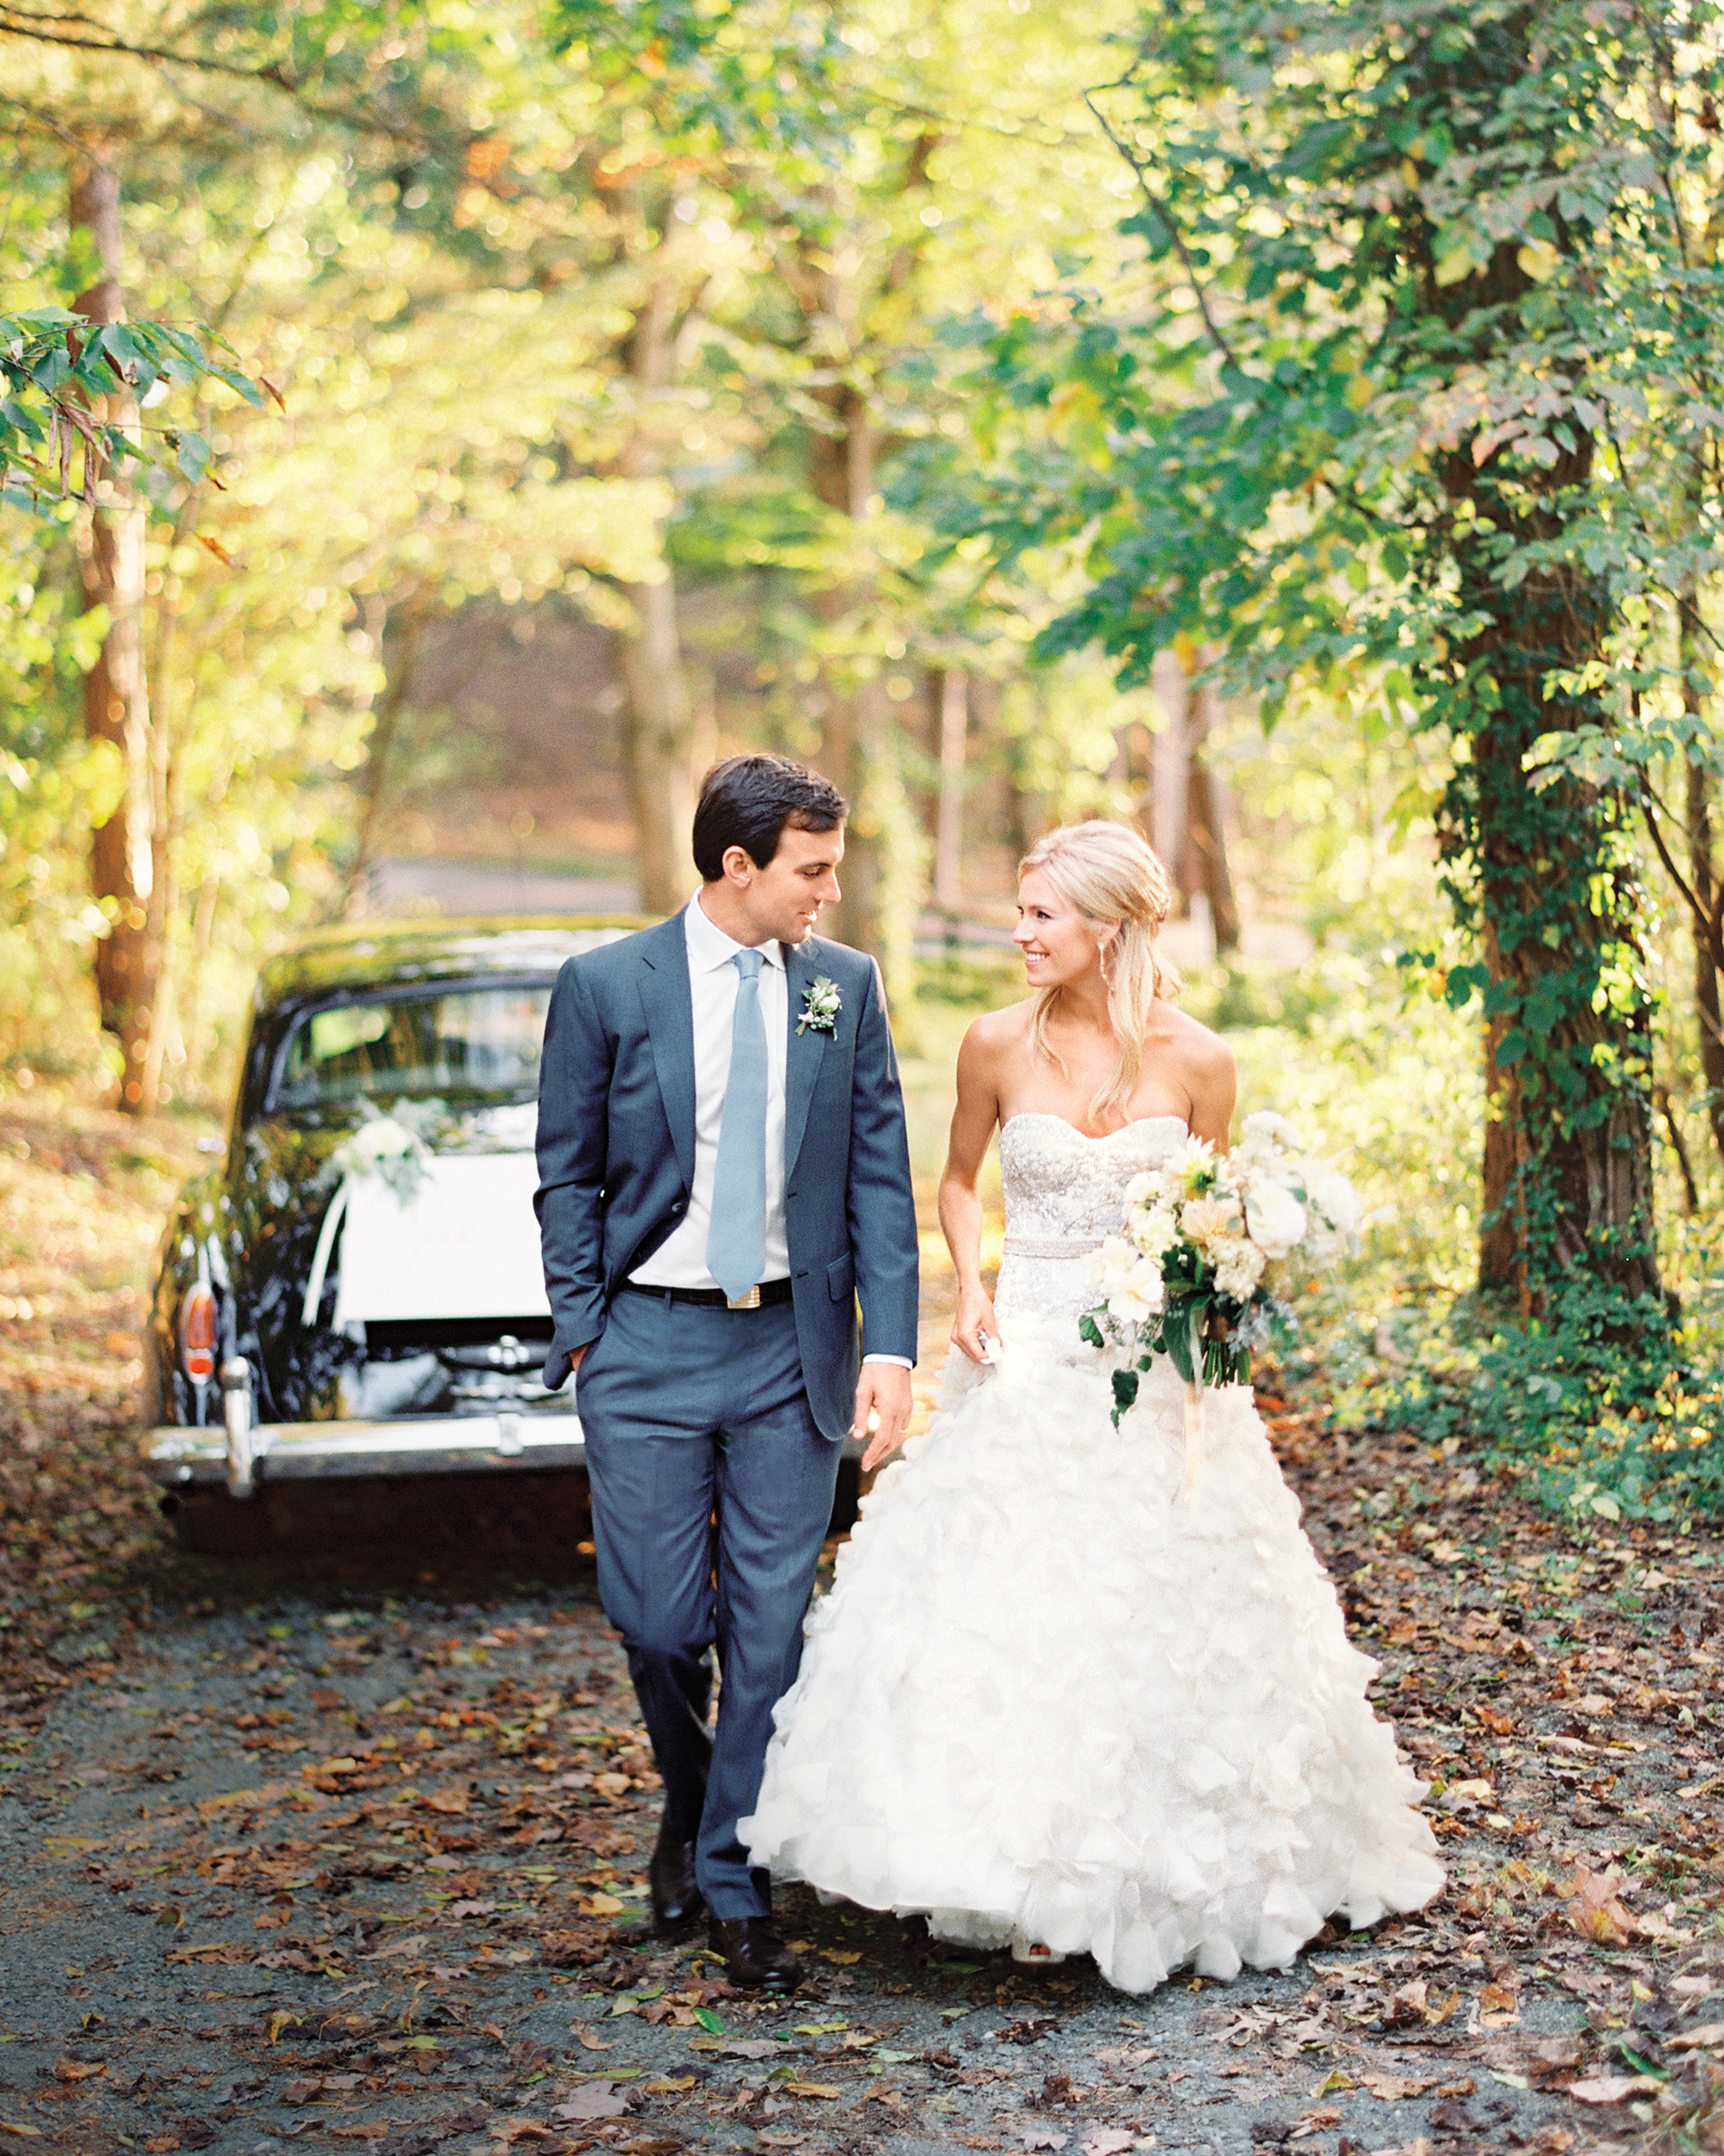 vintage-car-brideandgroom-004784-r-1-004-mwds110148.jpg